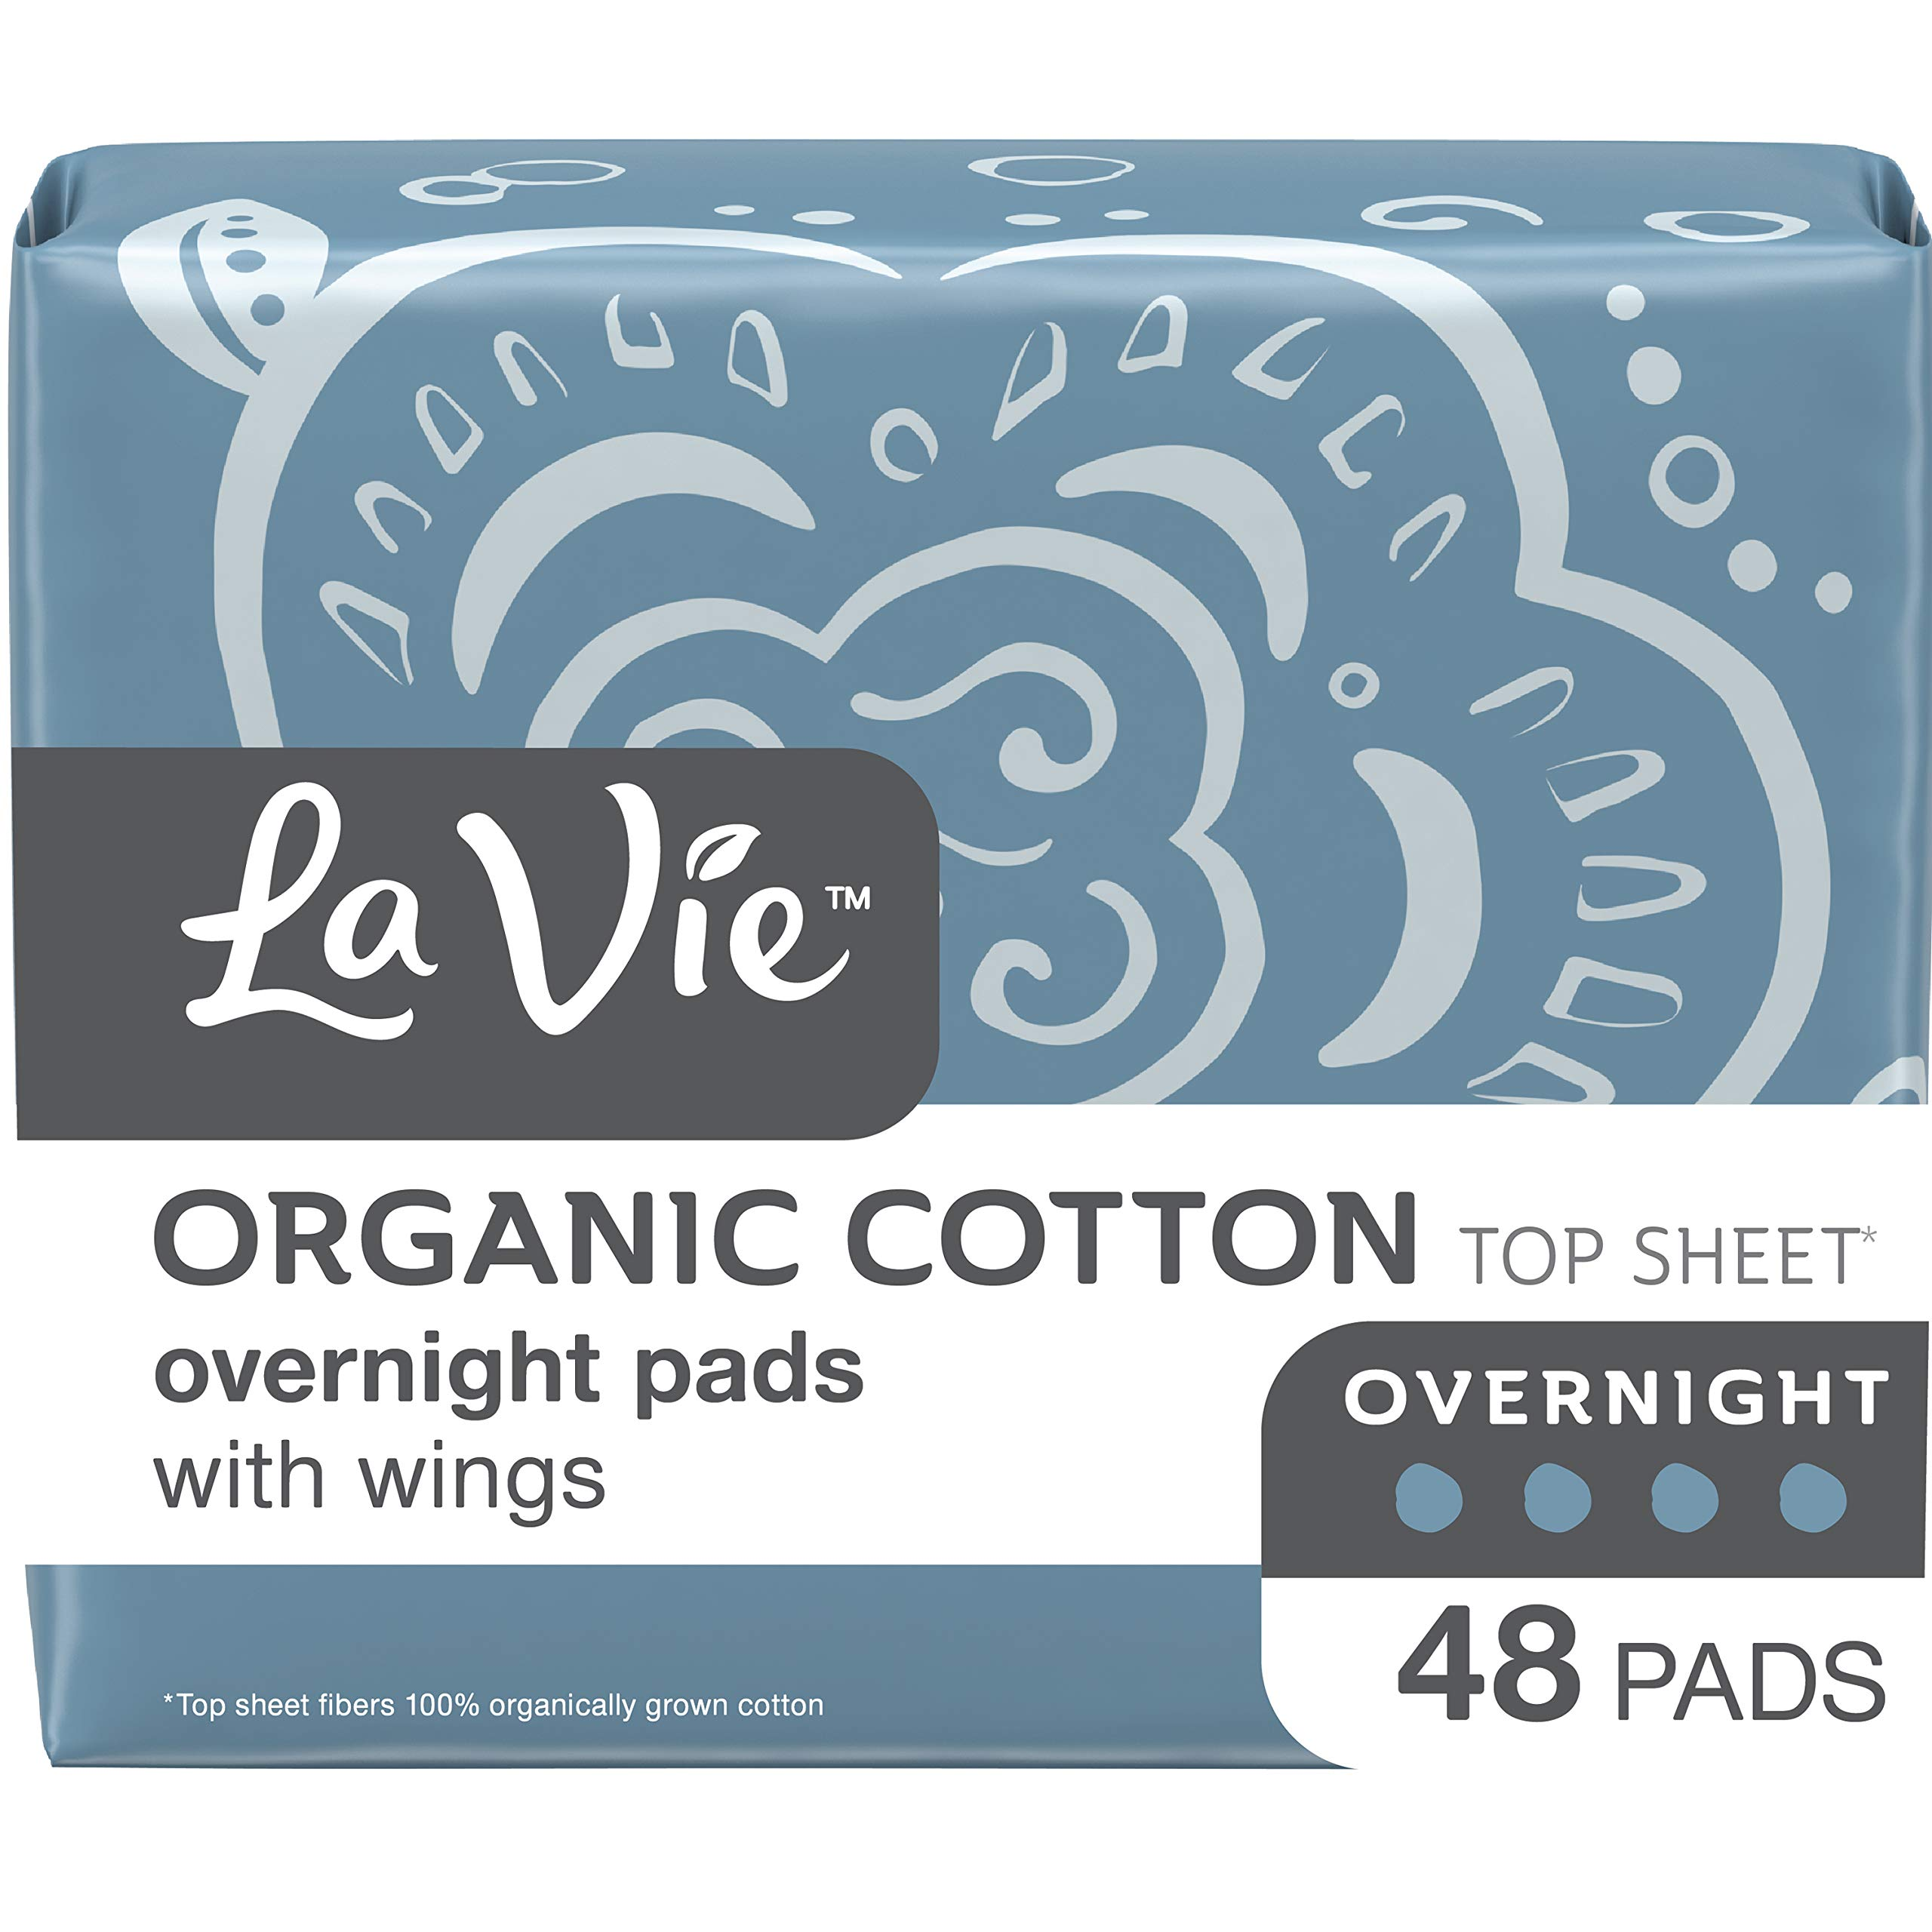 La Vie Organic Cotton Top Sheet* Feminine or Postpartum Pads with Wings, Overnight, Long, 48 Count (3 Bags of 16) by La Vie